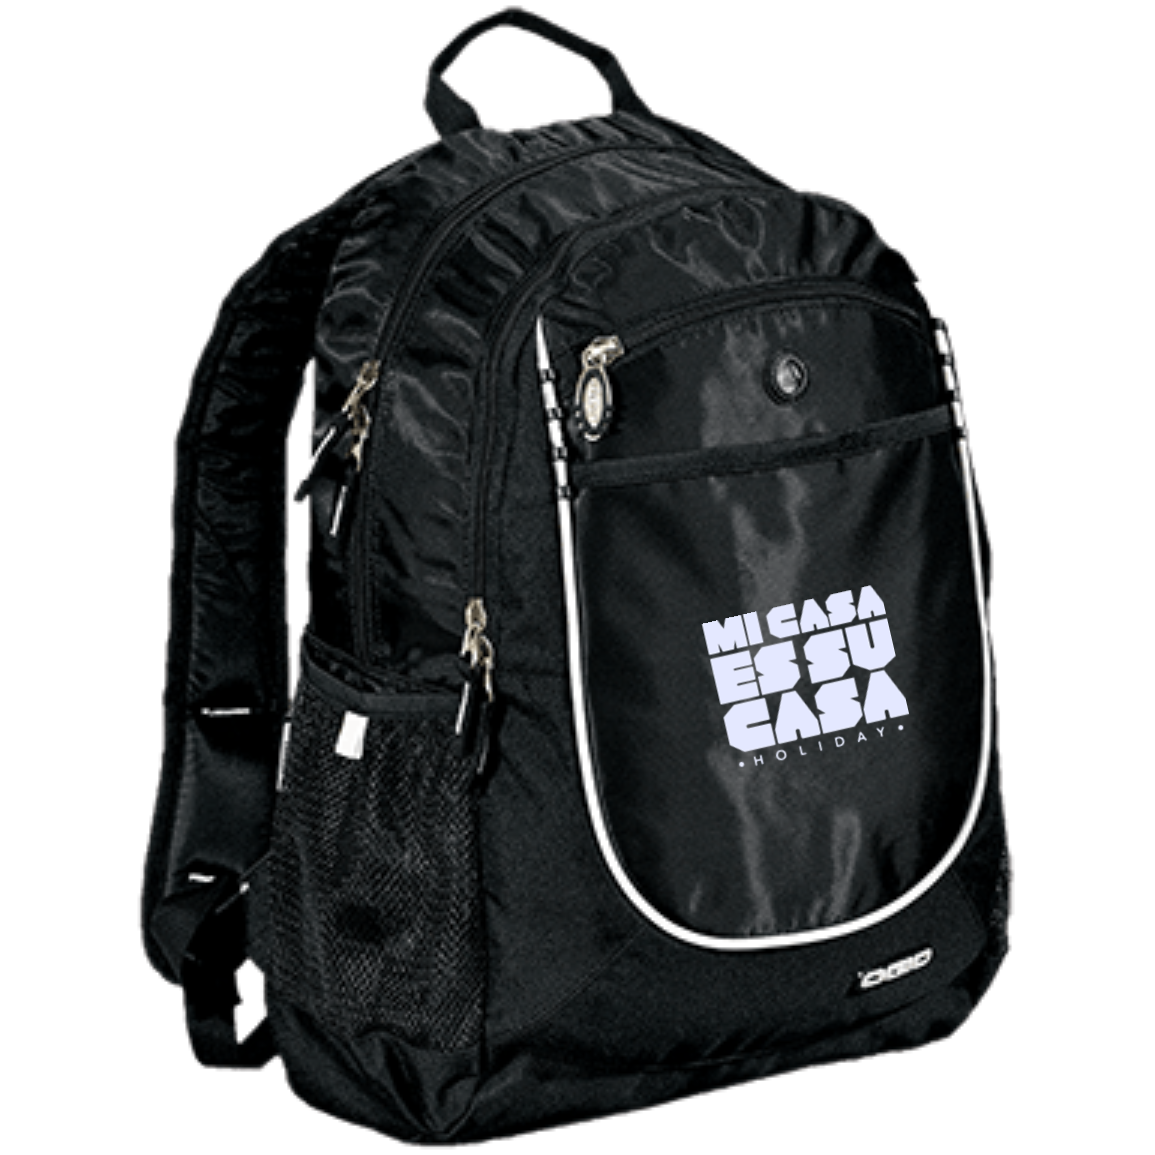 Mi Casa Holiday Rugged Book-Bag